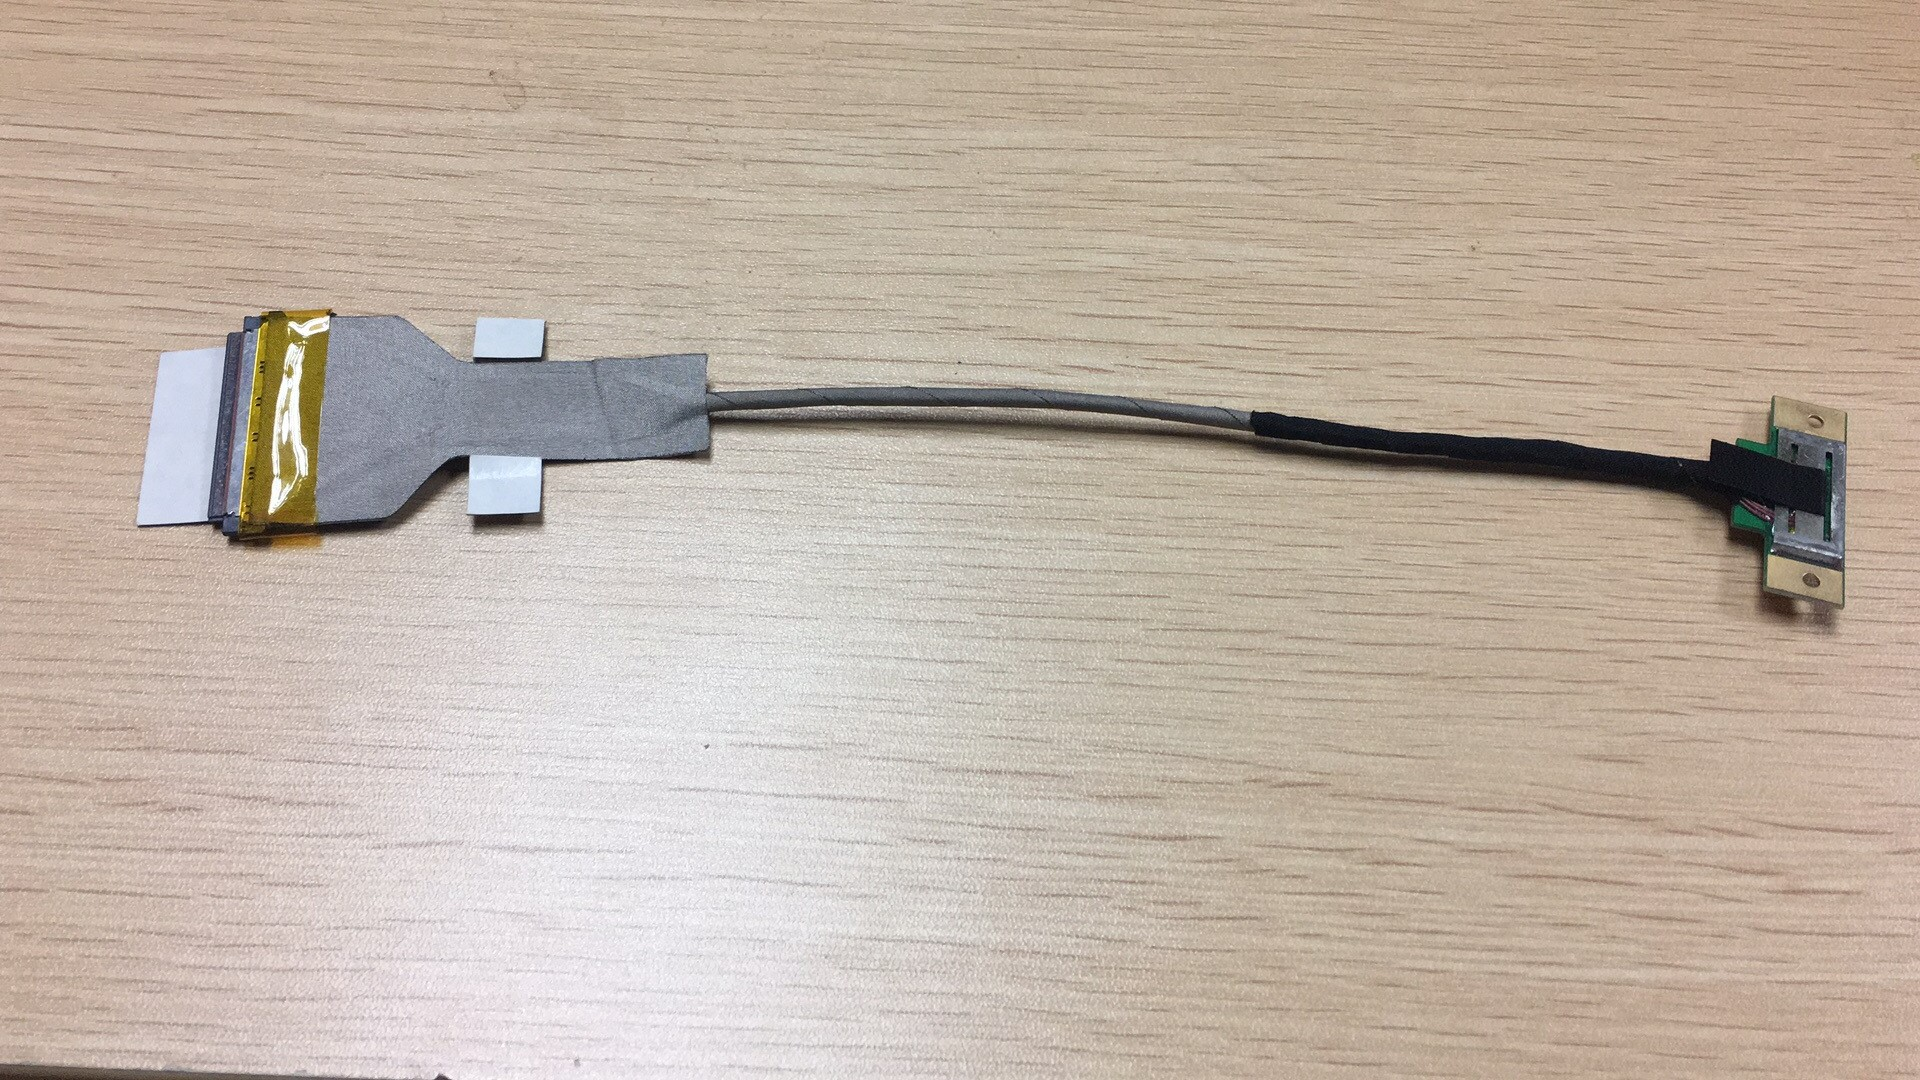 Sony VGC-RT150Y M840 073-0001-5617_A LED LCD Screen LVDS VIDEO FLEX Ribbon Connector Cable